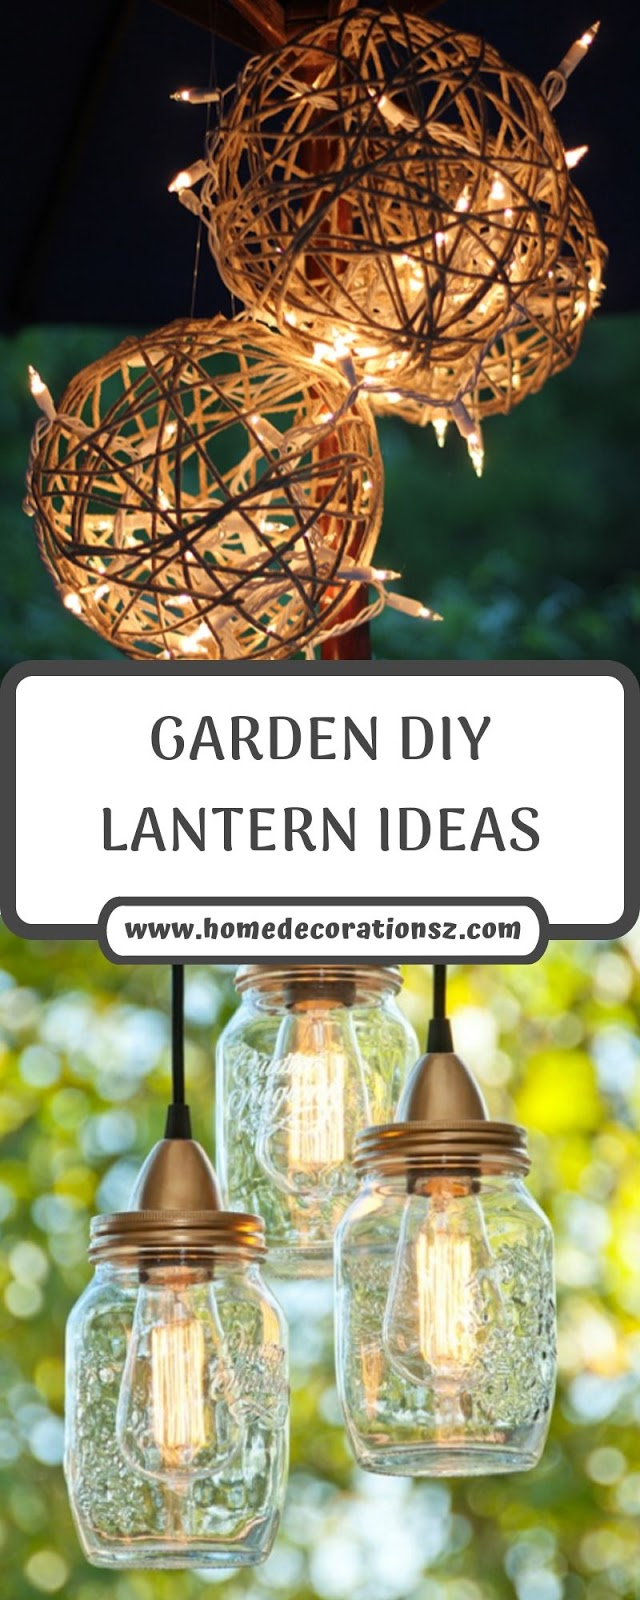 GARDEN DIY LANTERN IDEAS